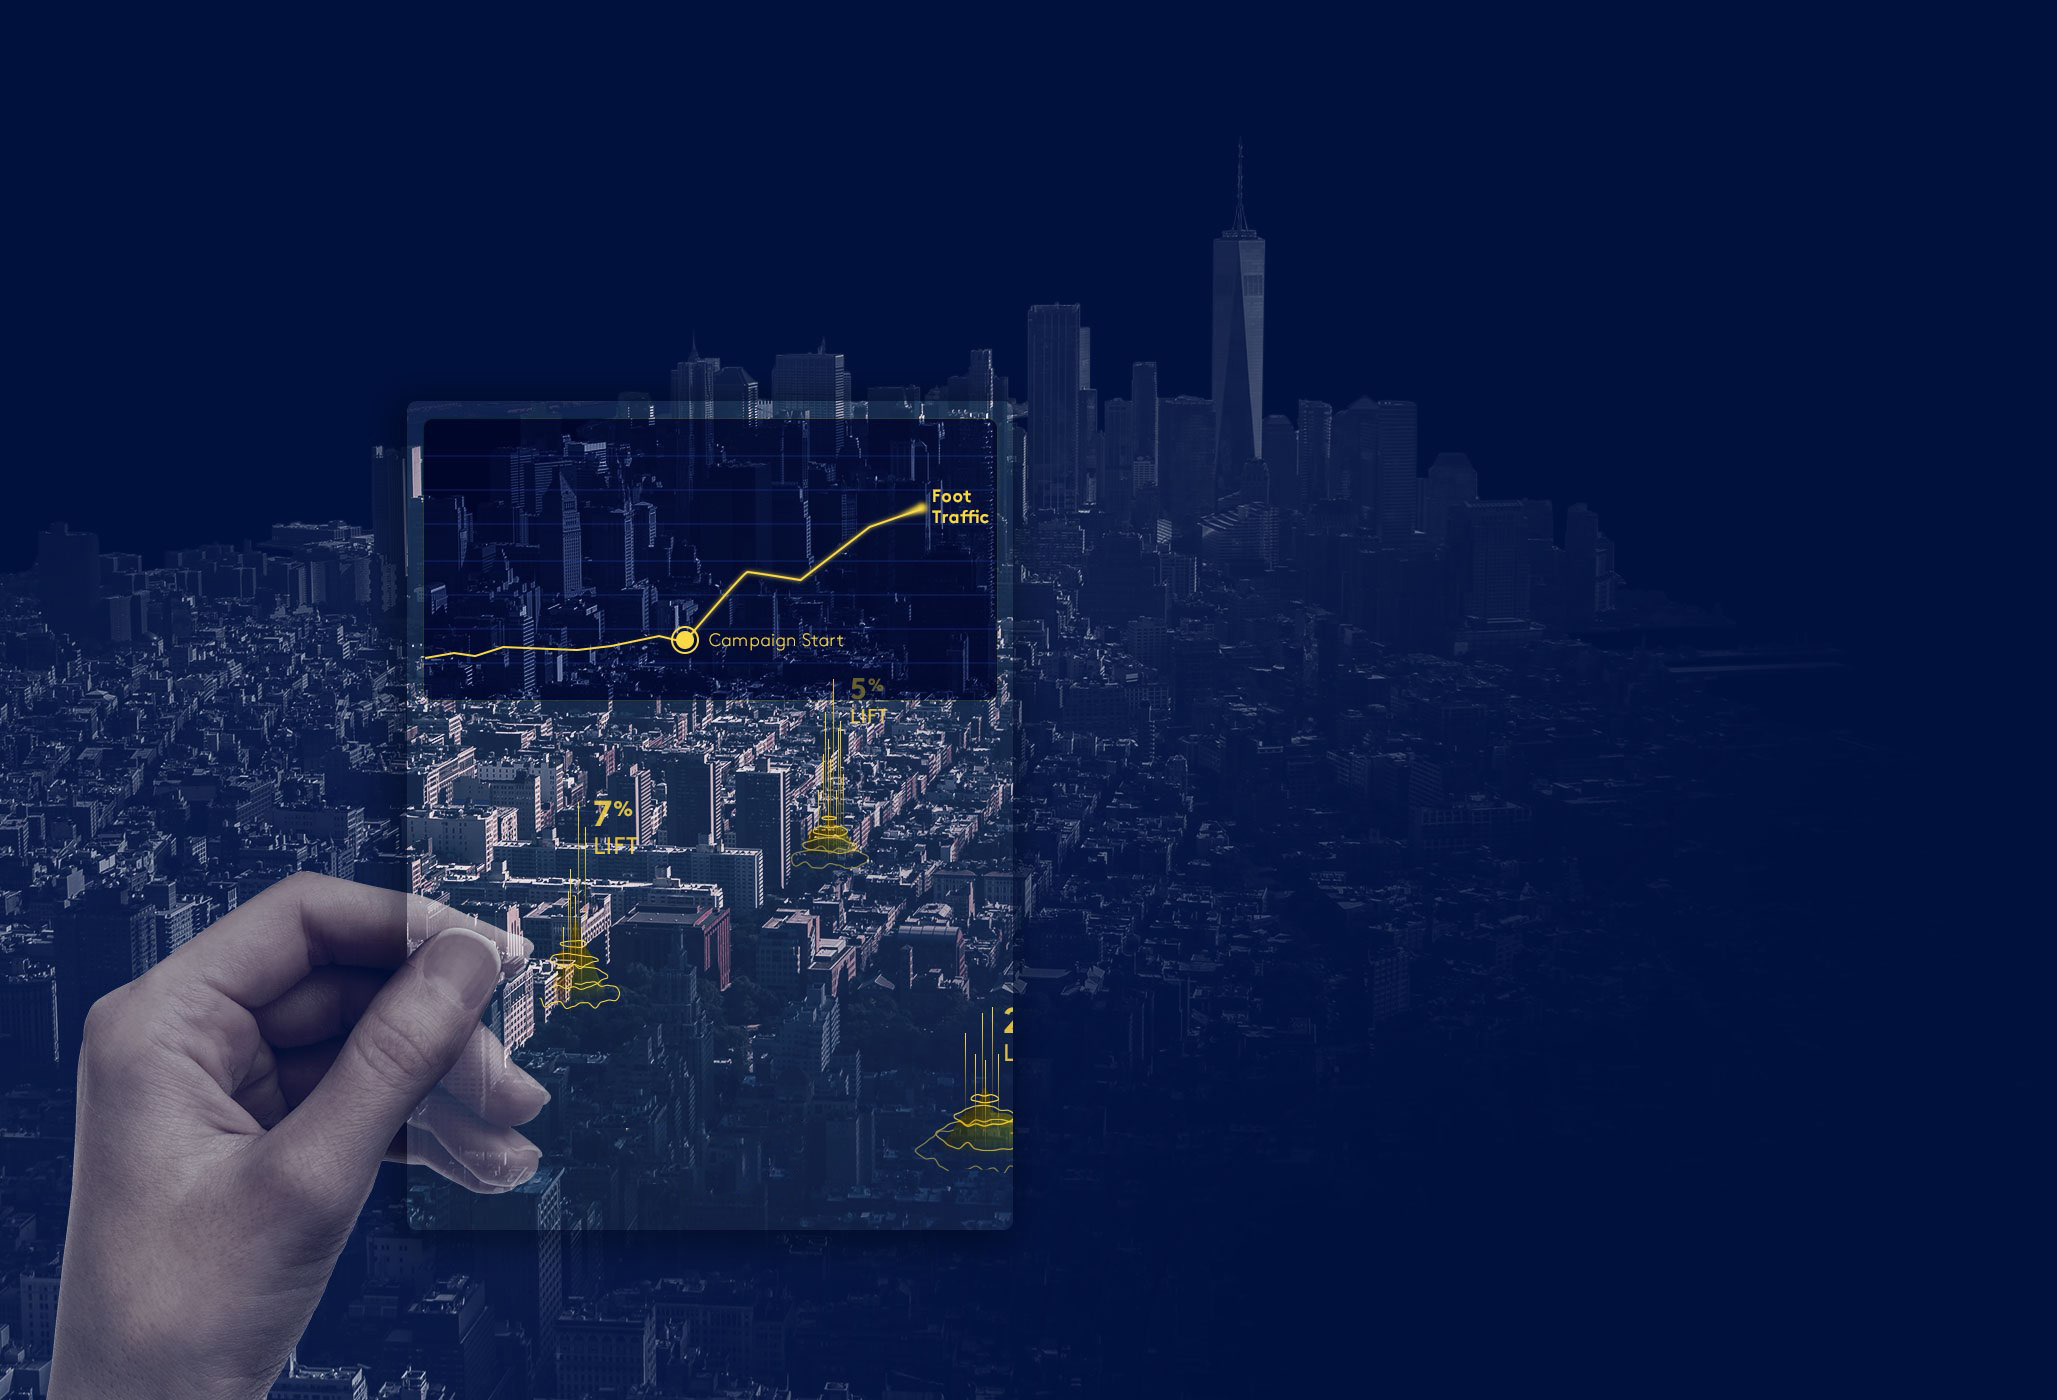 A hand holding a map of New York City with a graph showing increasing foot traffic